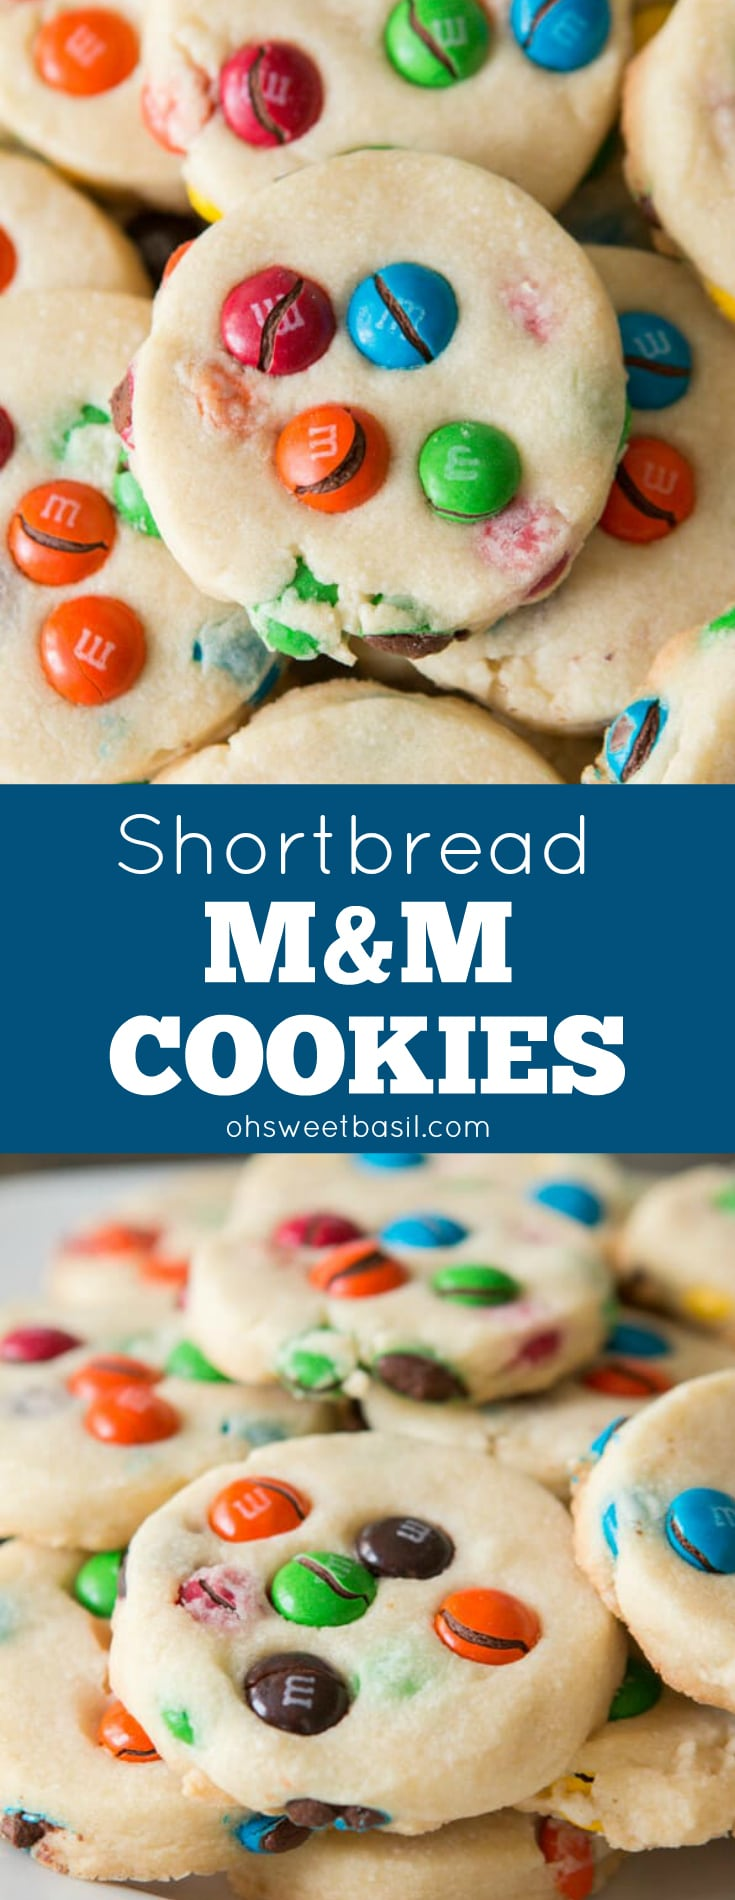 A stack of buttery Shortbread M&M Cookies